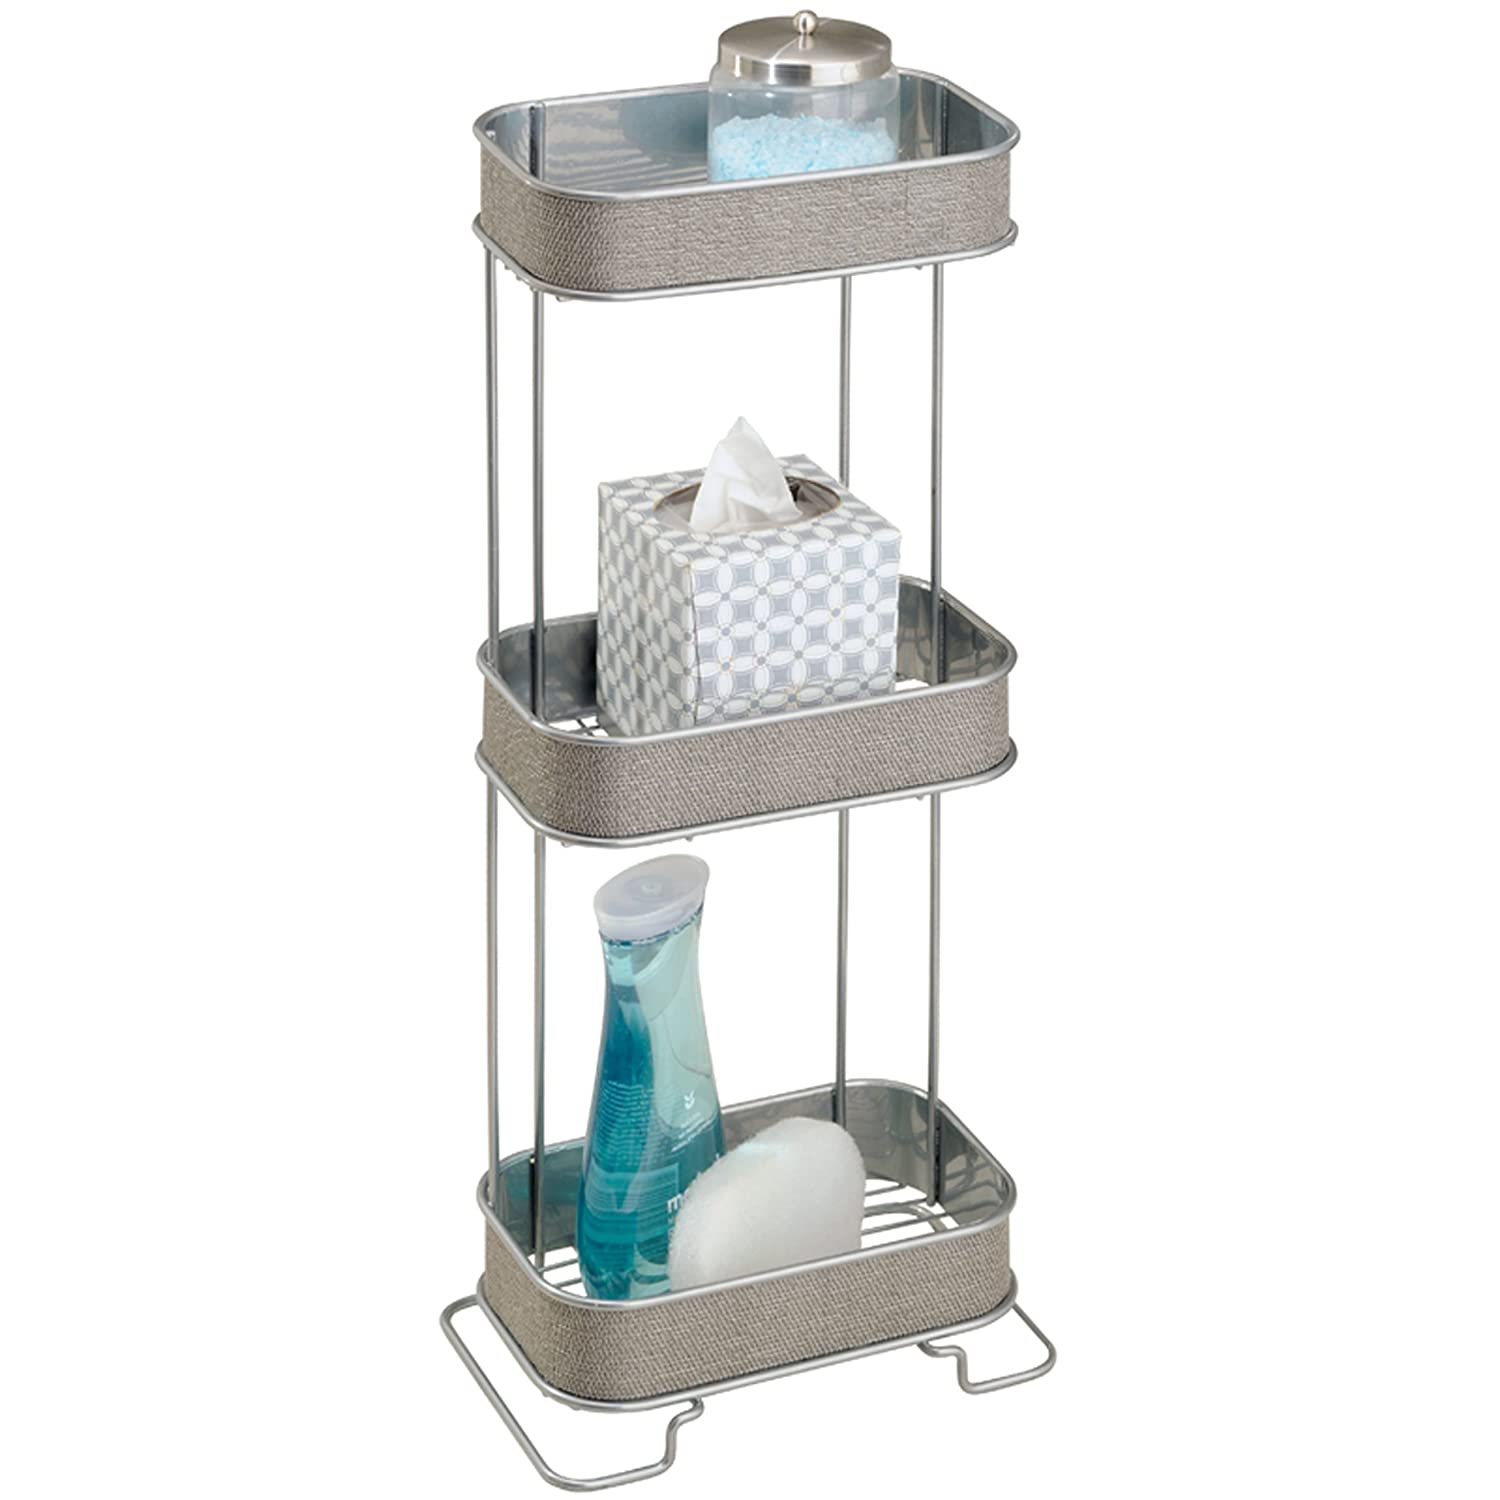 3 bathroom shelf storage holder wire silver shower bathtub for Bathroom accessories stand